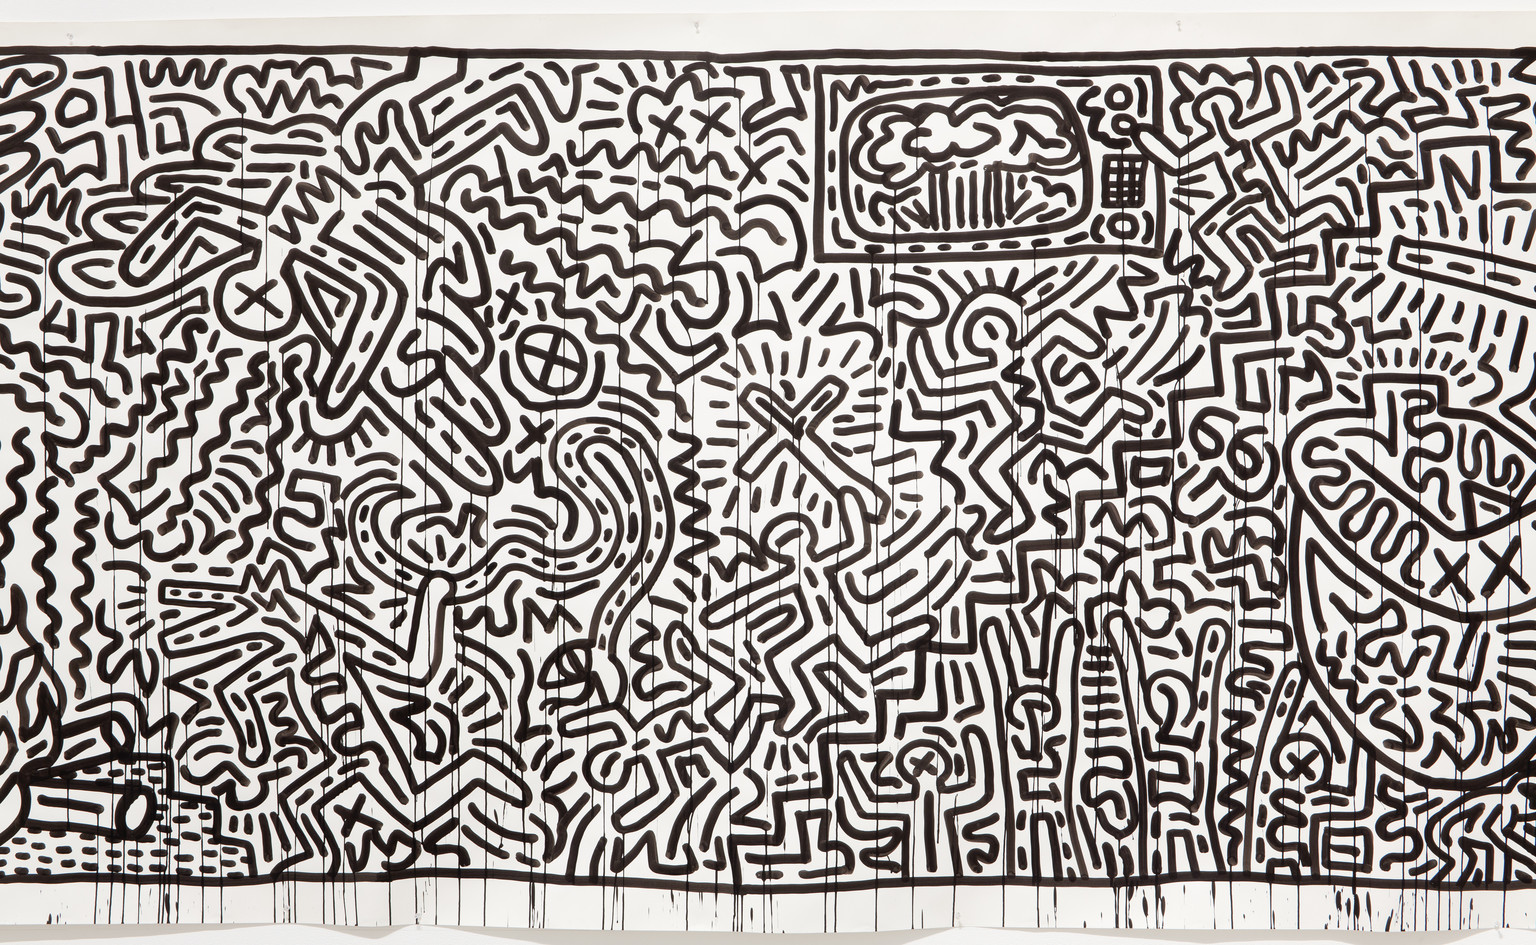 "Keith Haring. Untitled. 1982. Ink on two sheets of paper, Sheet: 72 x 671 1/2"" (182.9 x 1705.6cm) Part (panel a): 72 x 360 3/4""(182.9 x 916.3 cm) Part (panel b): 72 x 310 1/4"" (182.9 x 788 cm). Gift of the Estate of Keith Haring, Inc. © 2019 The Keith Haring Foundation"